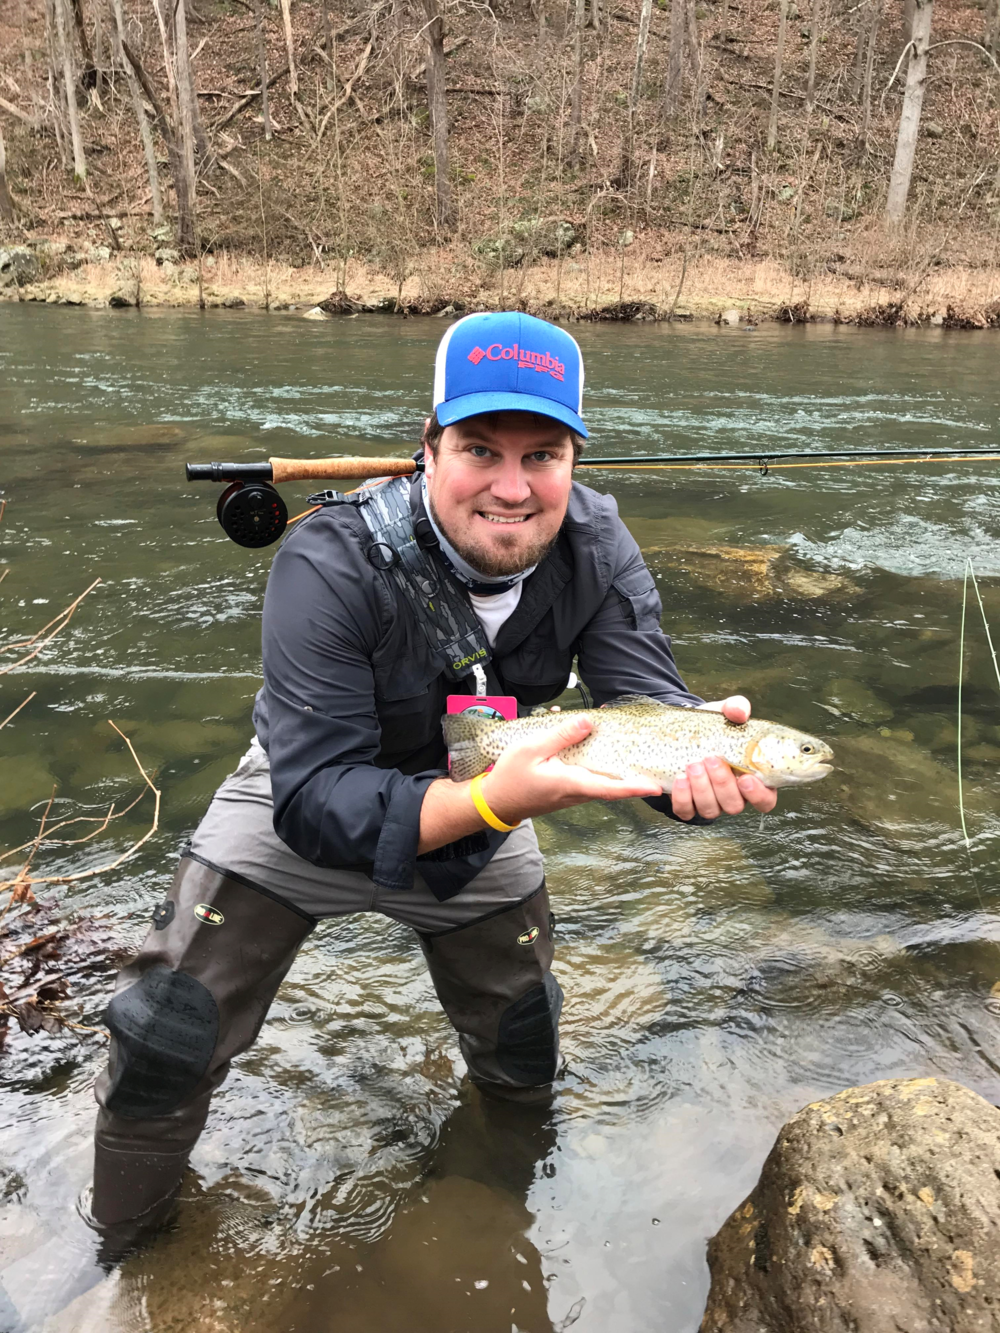 Zachary Smith   I live in Southwestern, VA and have lived here most of my life. Fishing and outdoors has been a passion of mine since I was little. I have fished for most of my life. I started fly fishing over five years ago and fly tying over a year ago. I love being outdoors and fishing is just one of the many activities that I love and have a passion for in the outdoors. It is a way for me to get out and relax at the end of day and be in nature. I am currently an Attorney because I have to pay for all of my hobbies including being an avid fisherman. I have worked with many foster children in the Court systems and look forward to sharing the love of fishing with them.